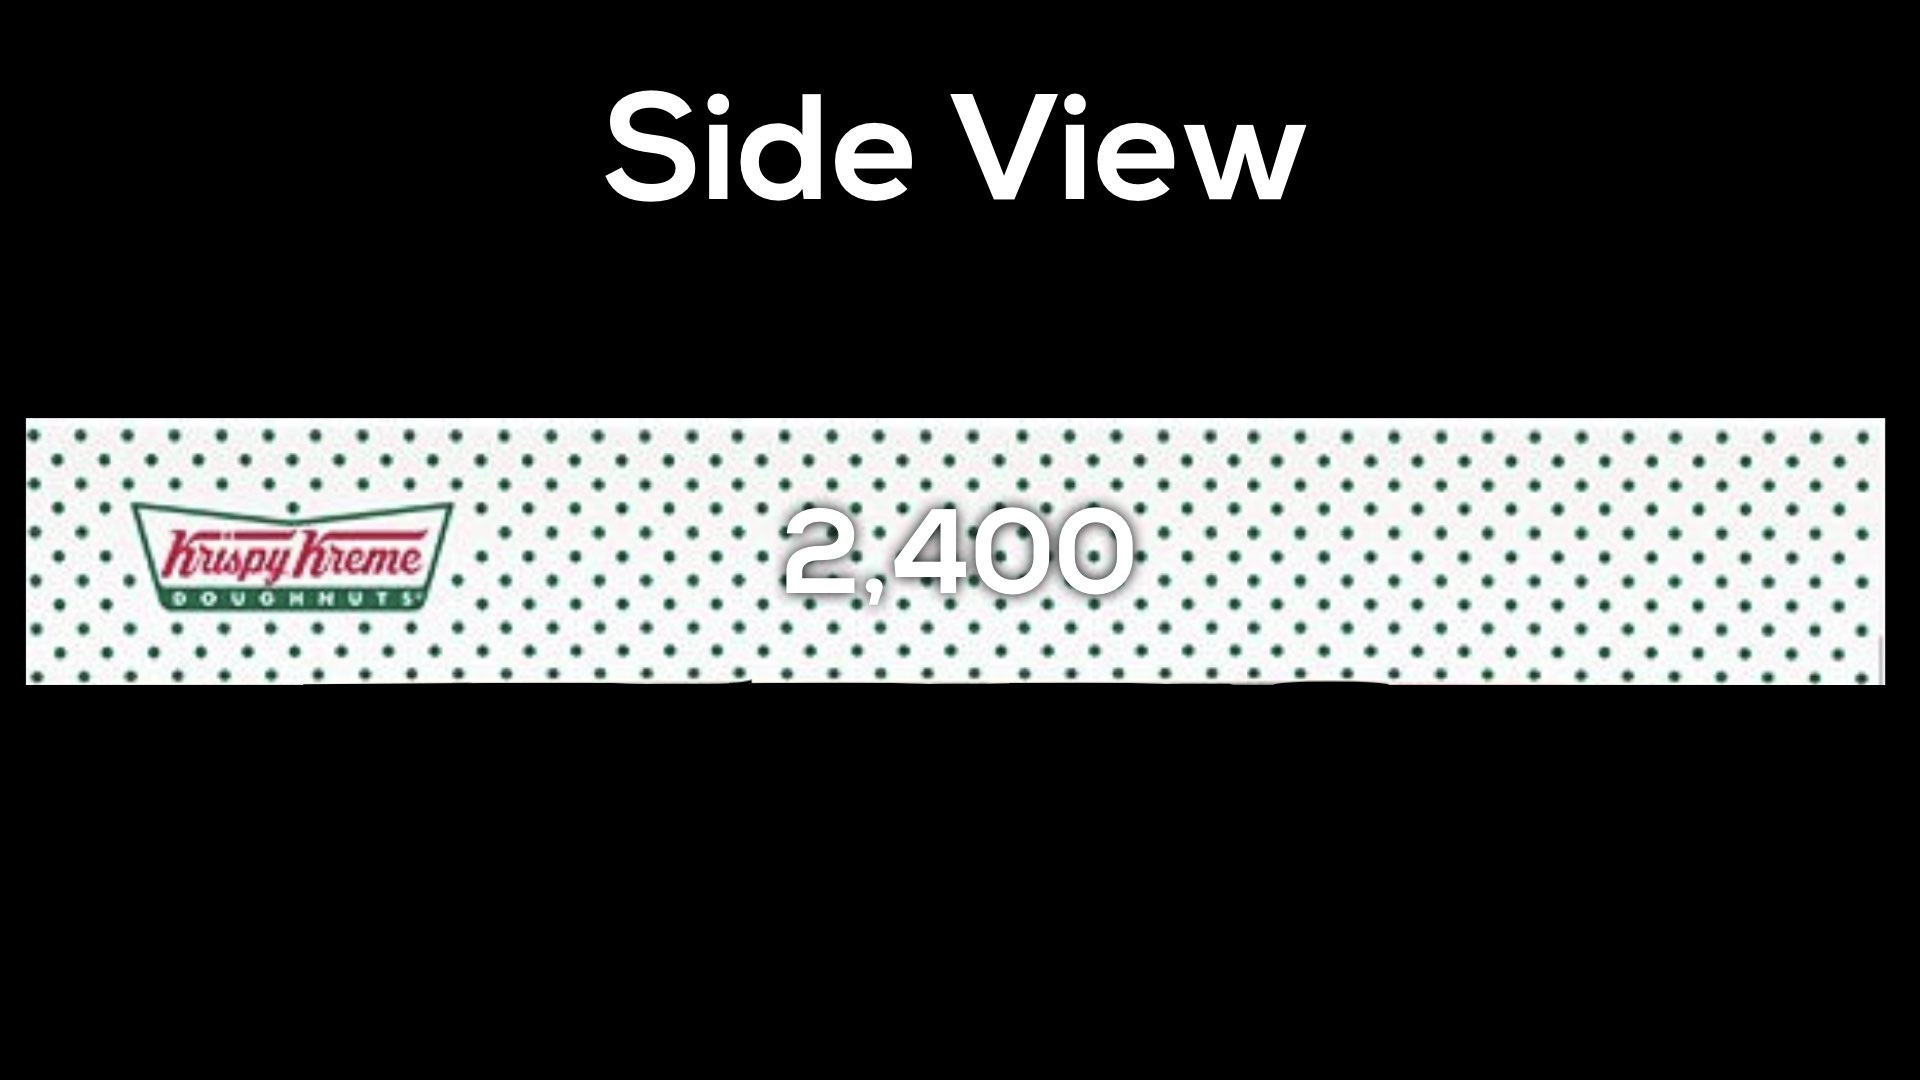 Krispy Kreme Donut Delight Extension 1 - How many layers - side view